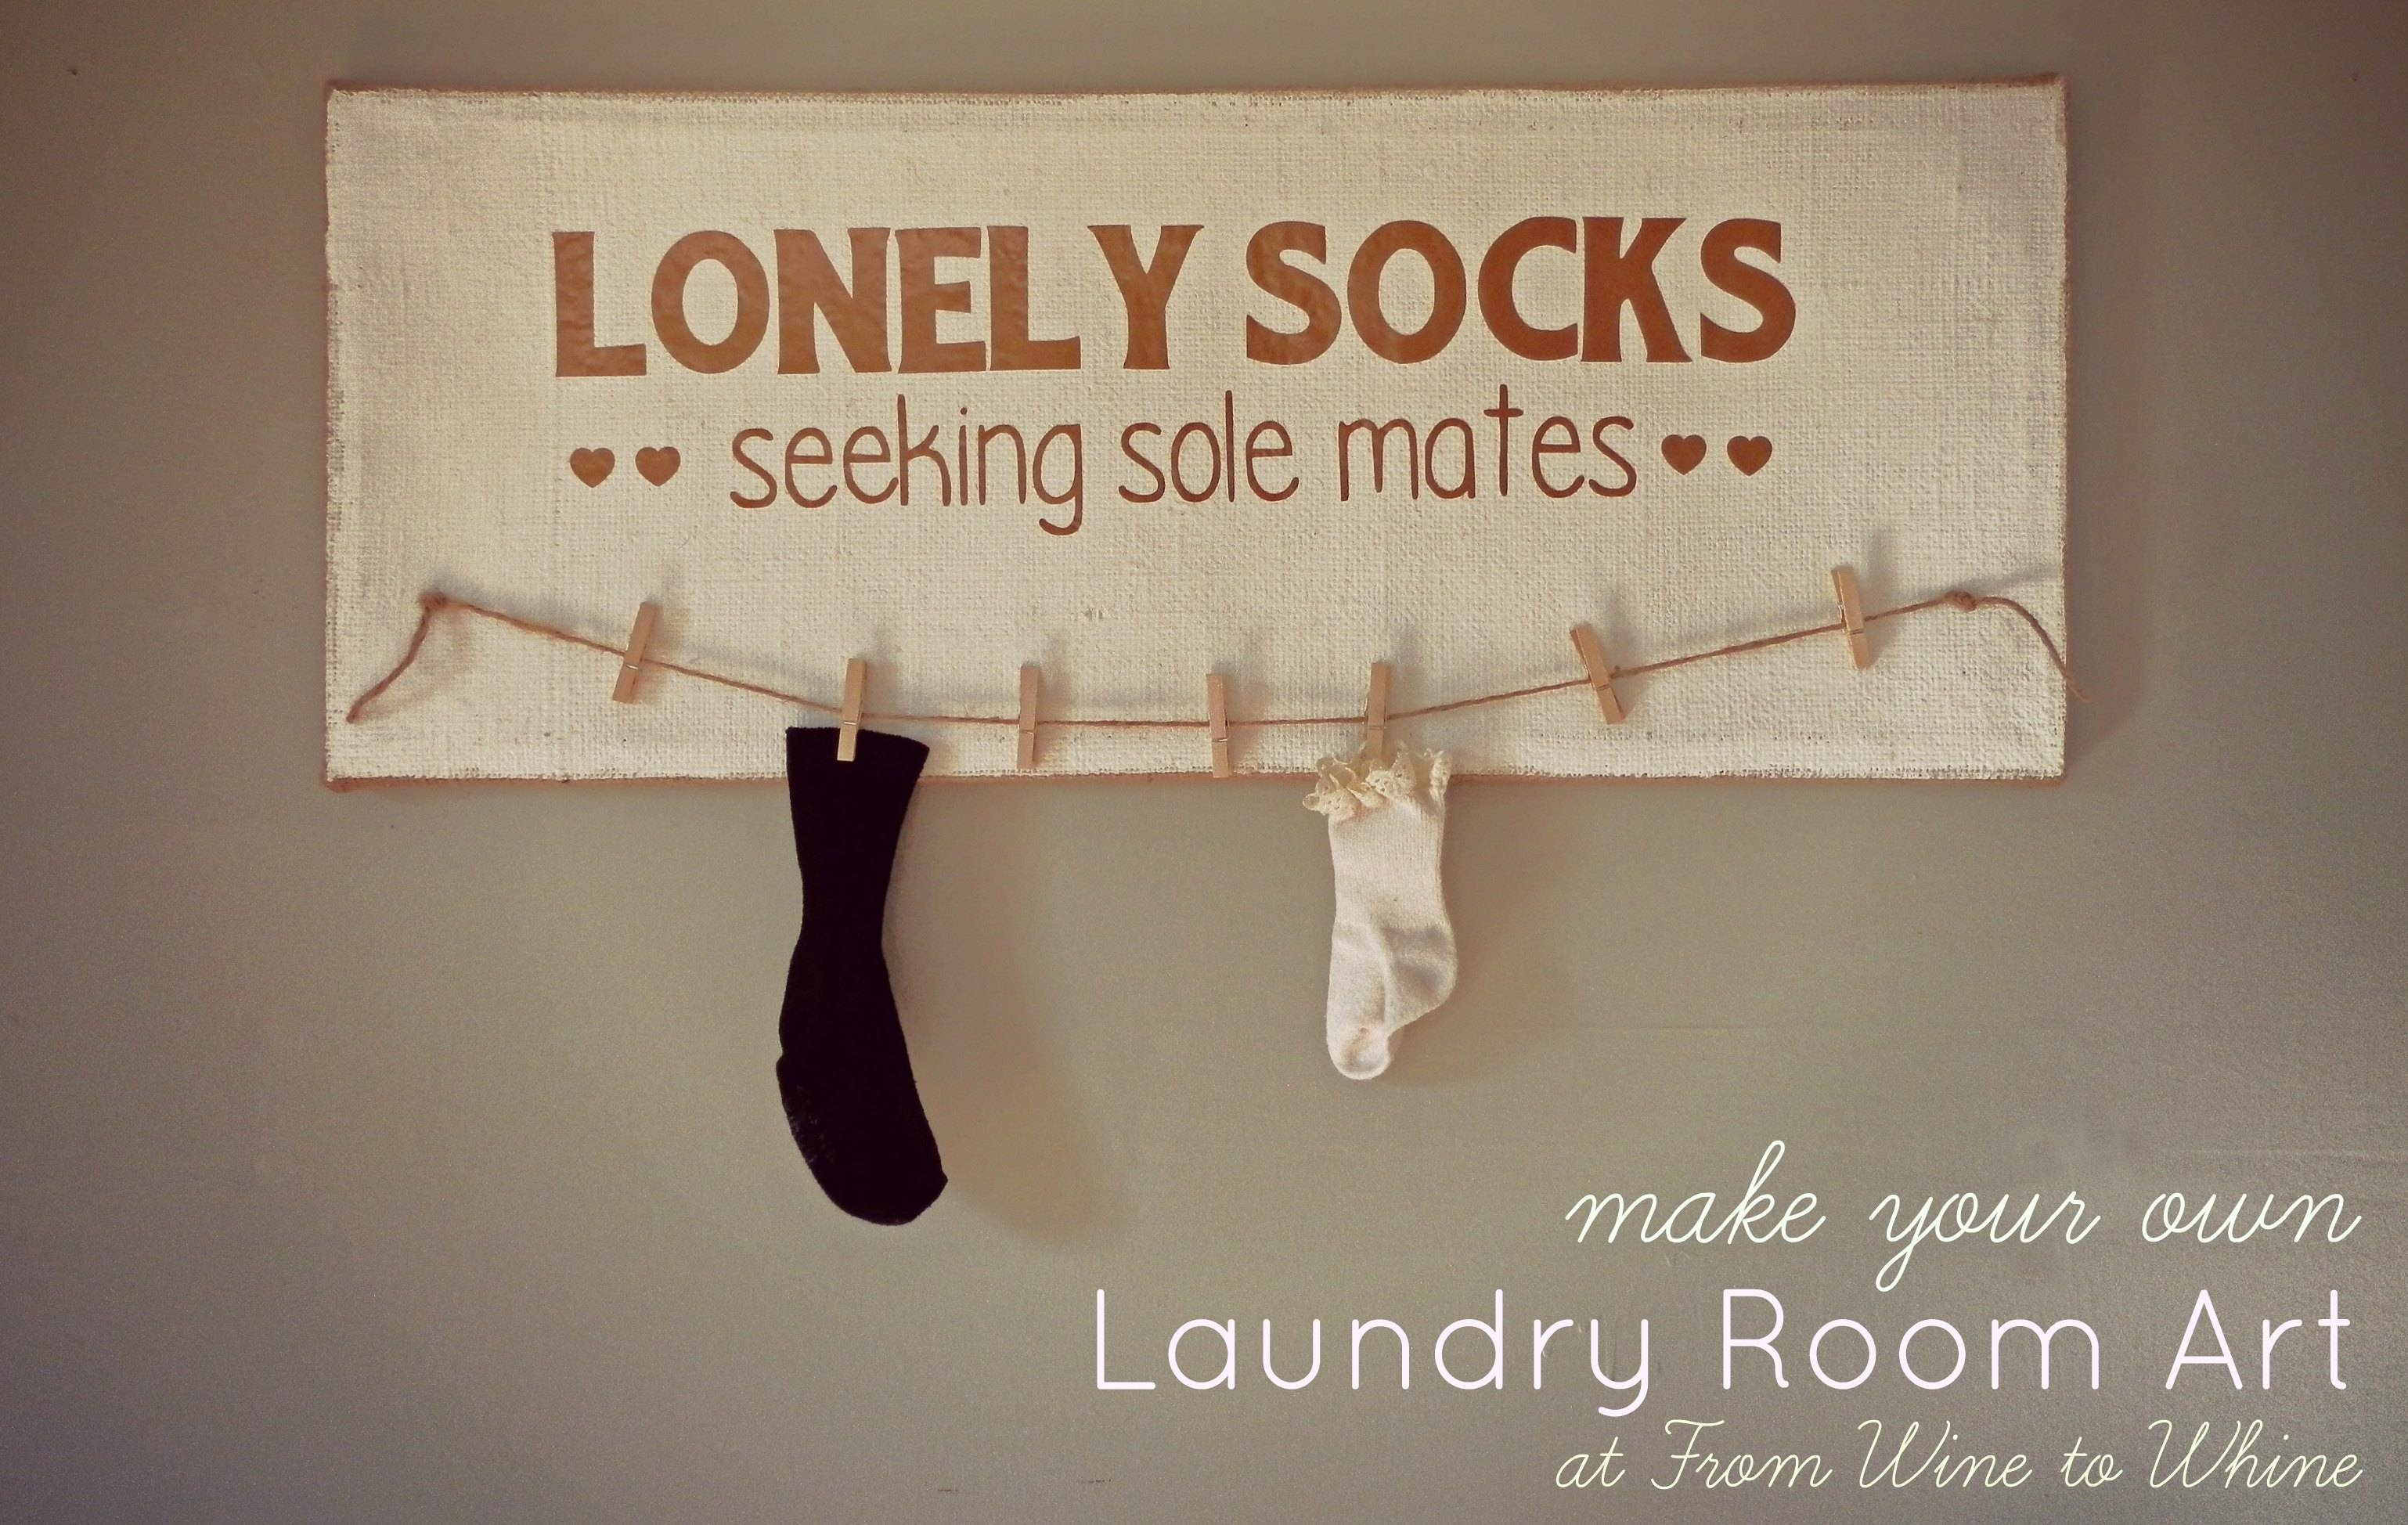 Wall Art For Laundry Room – Creeksideyarns With Regard To Most Recent Laundry Room Wall Art (View 19 of 30)